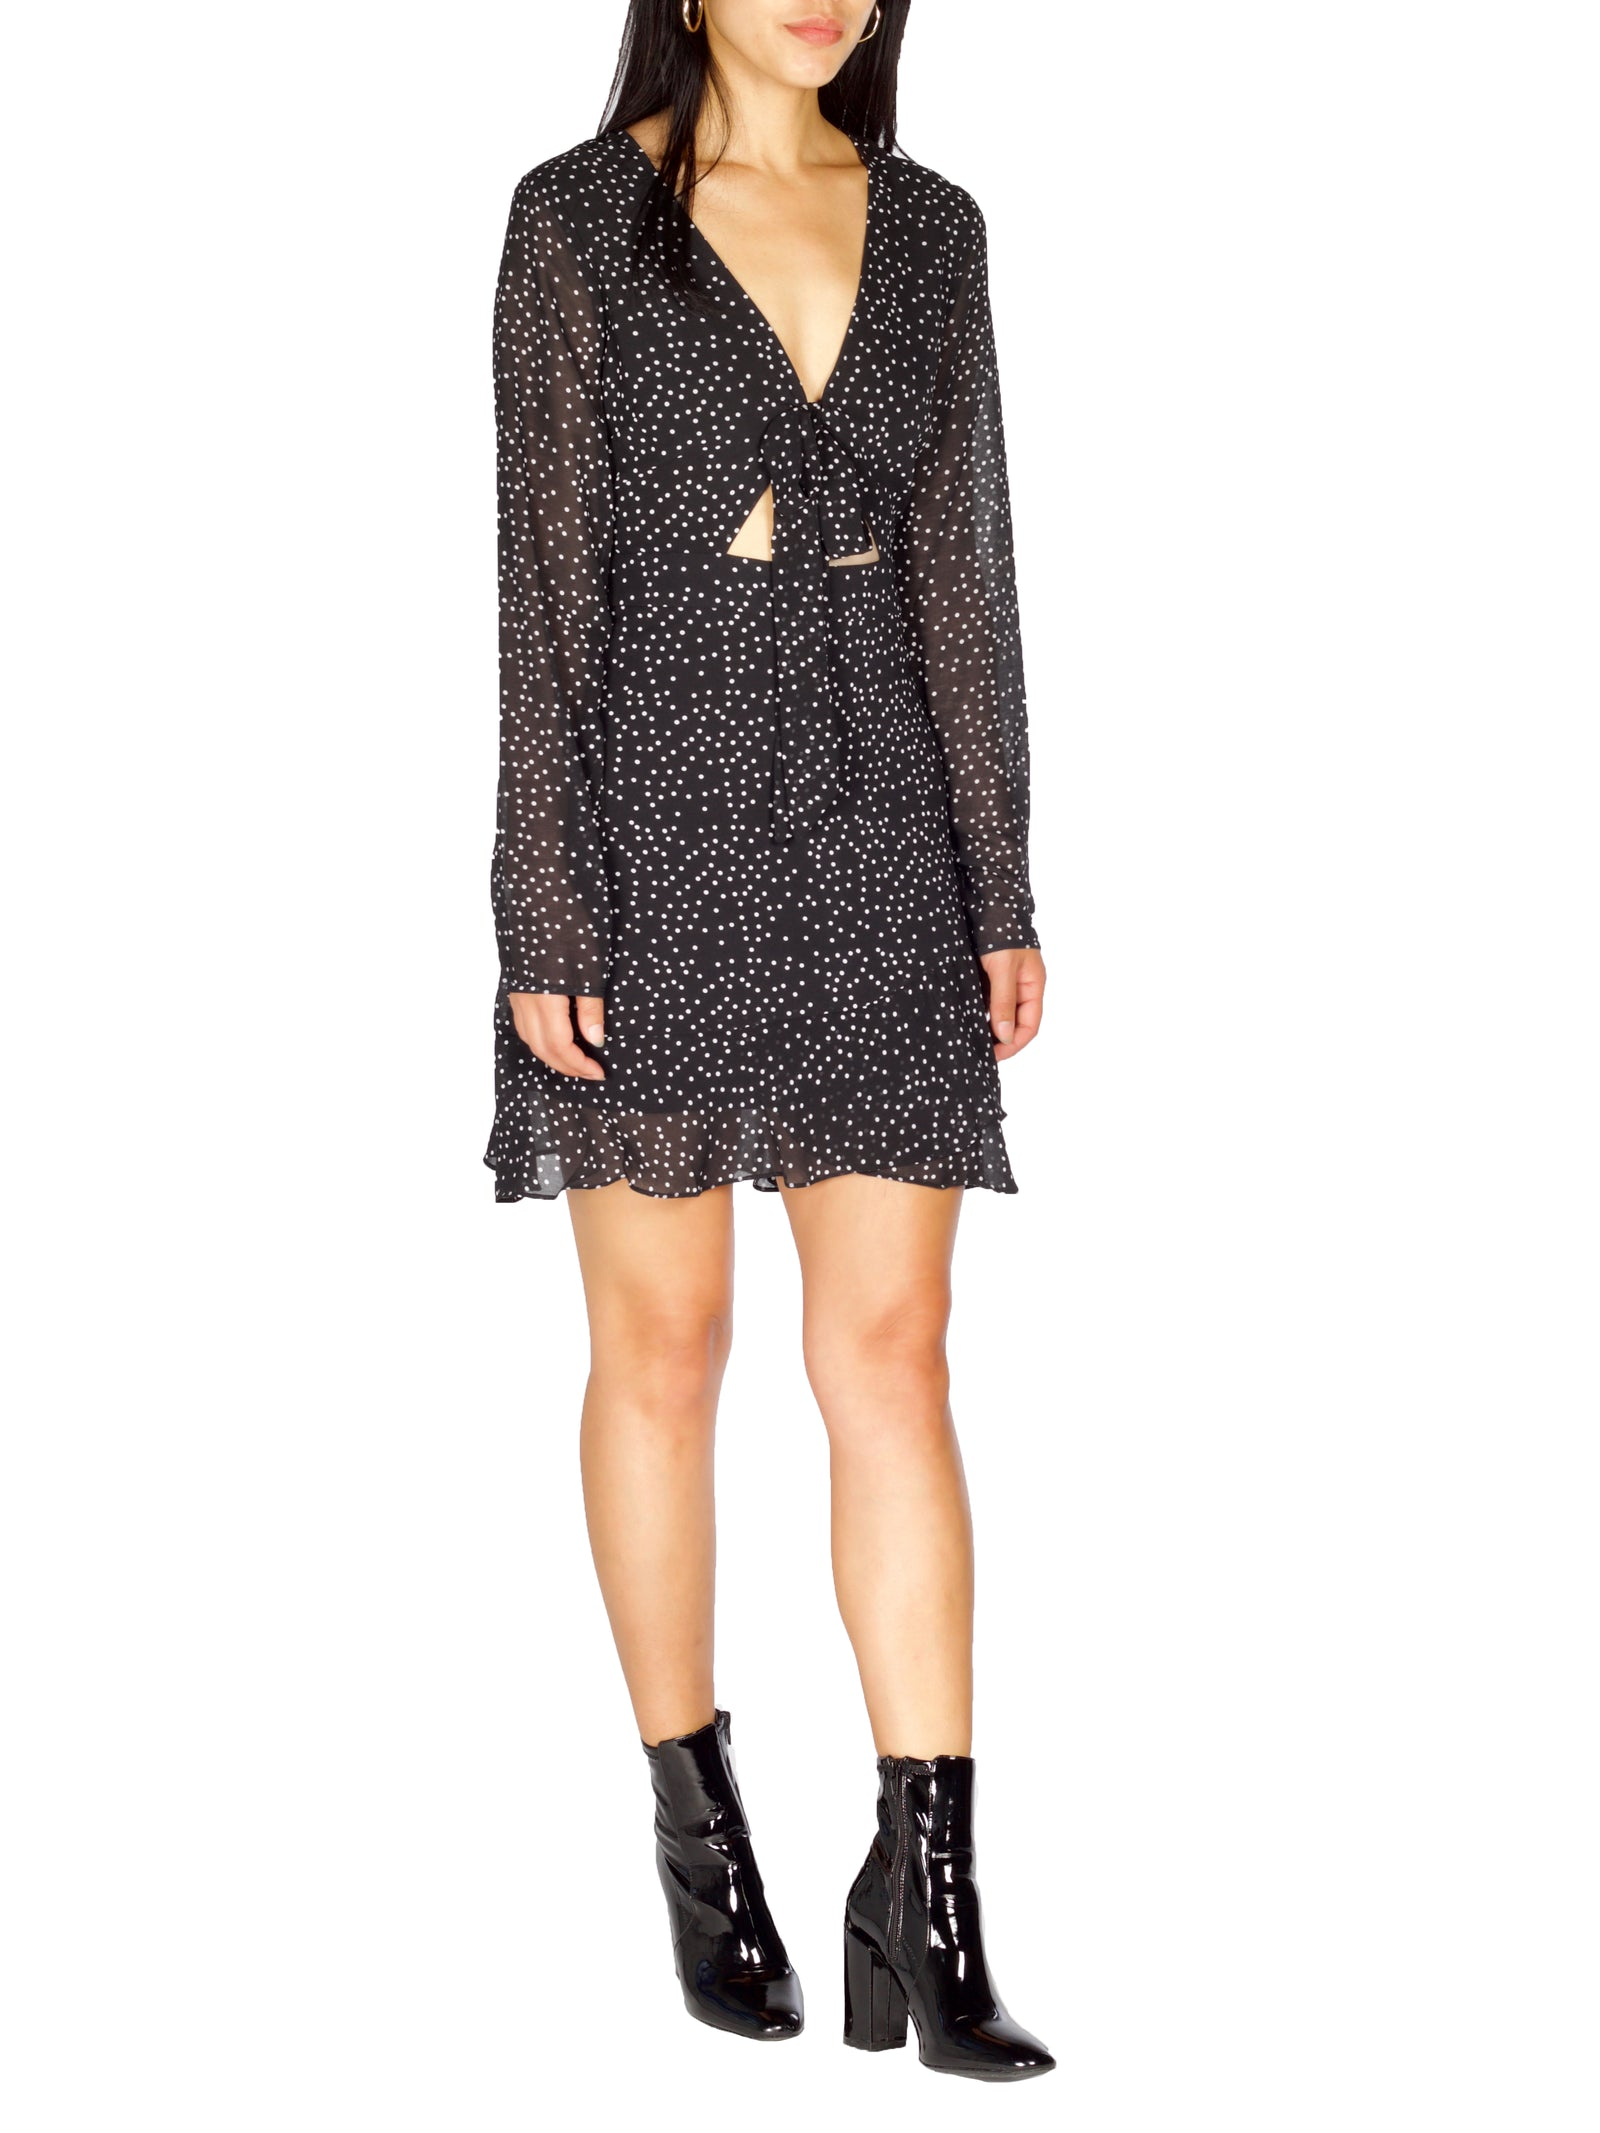 Melrose Polka Dot Dress - PRADEGAL